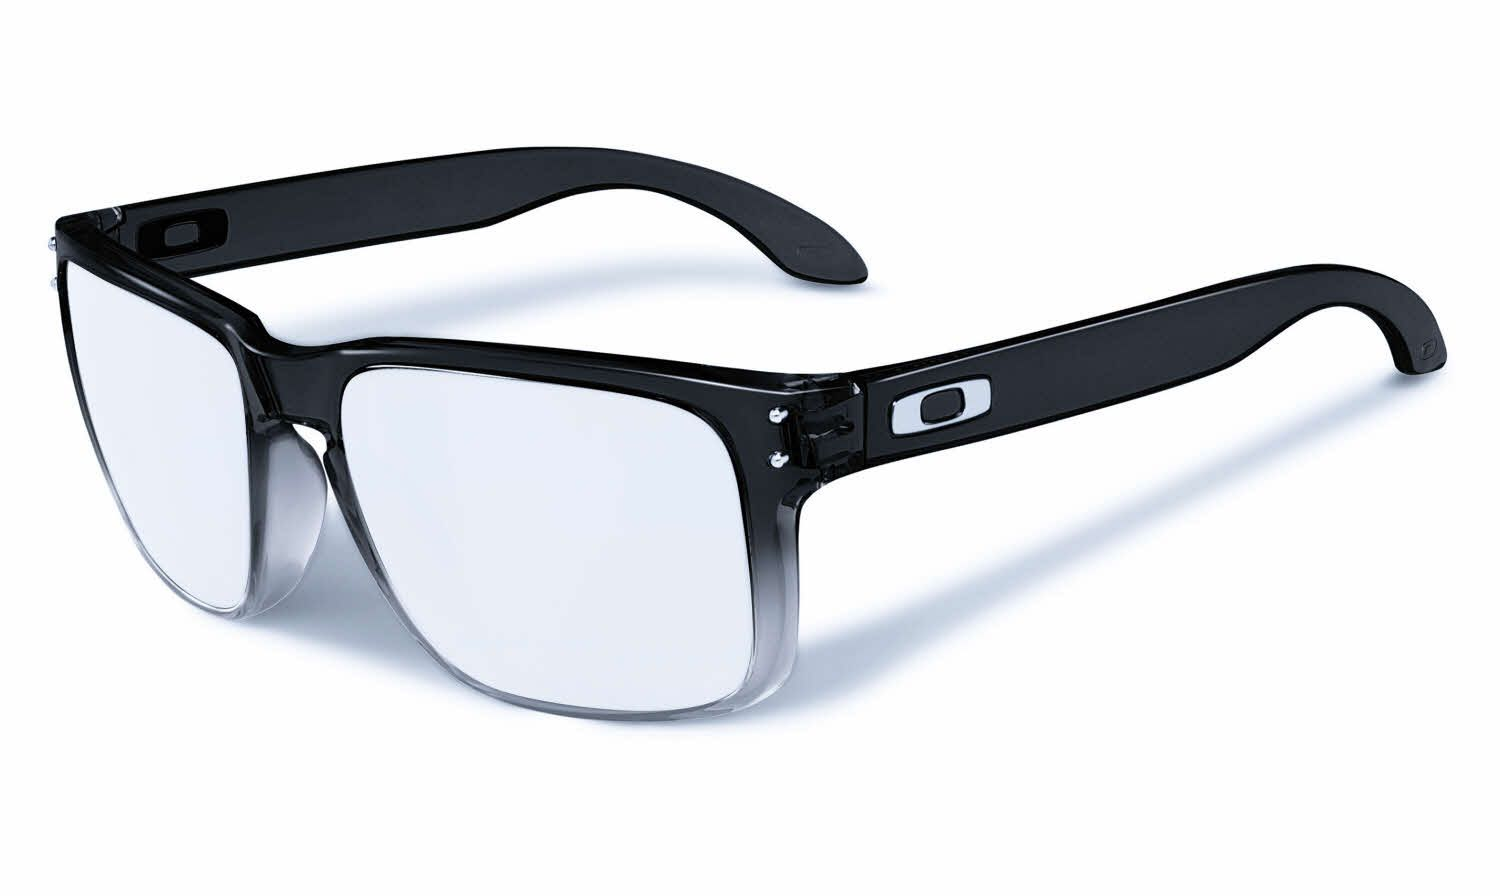 Oakley Holbrook Prescription Sunglasses Free Shipping Oakley Oakley Sunglasses Oakley Holbrook